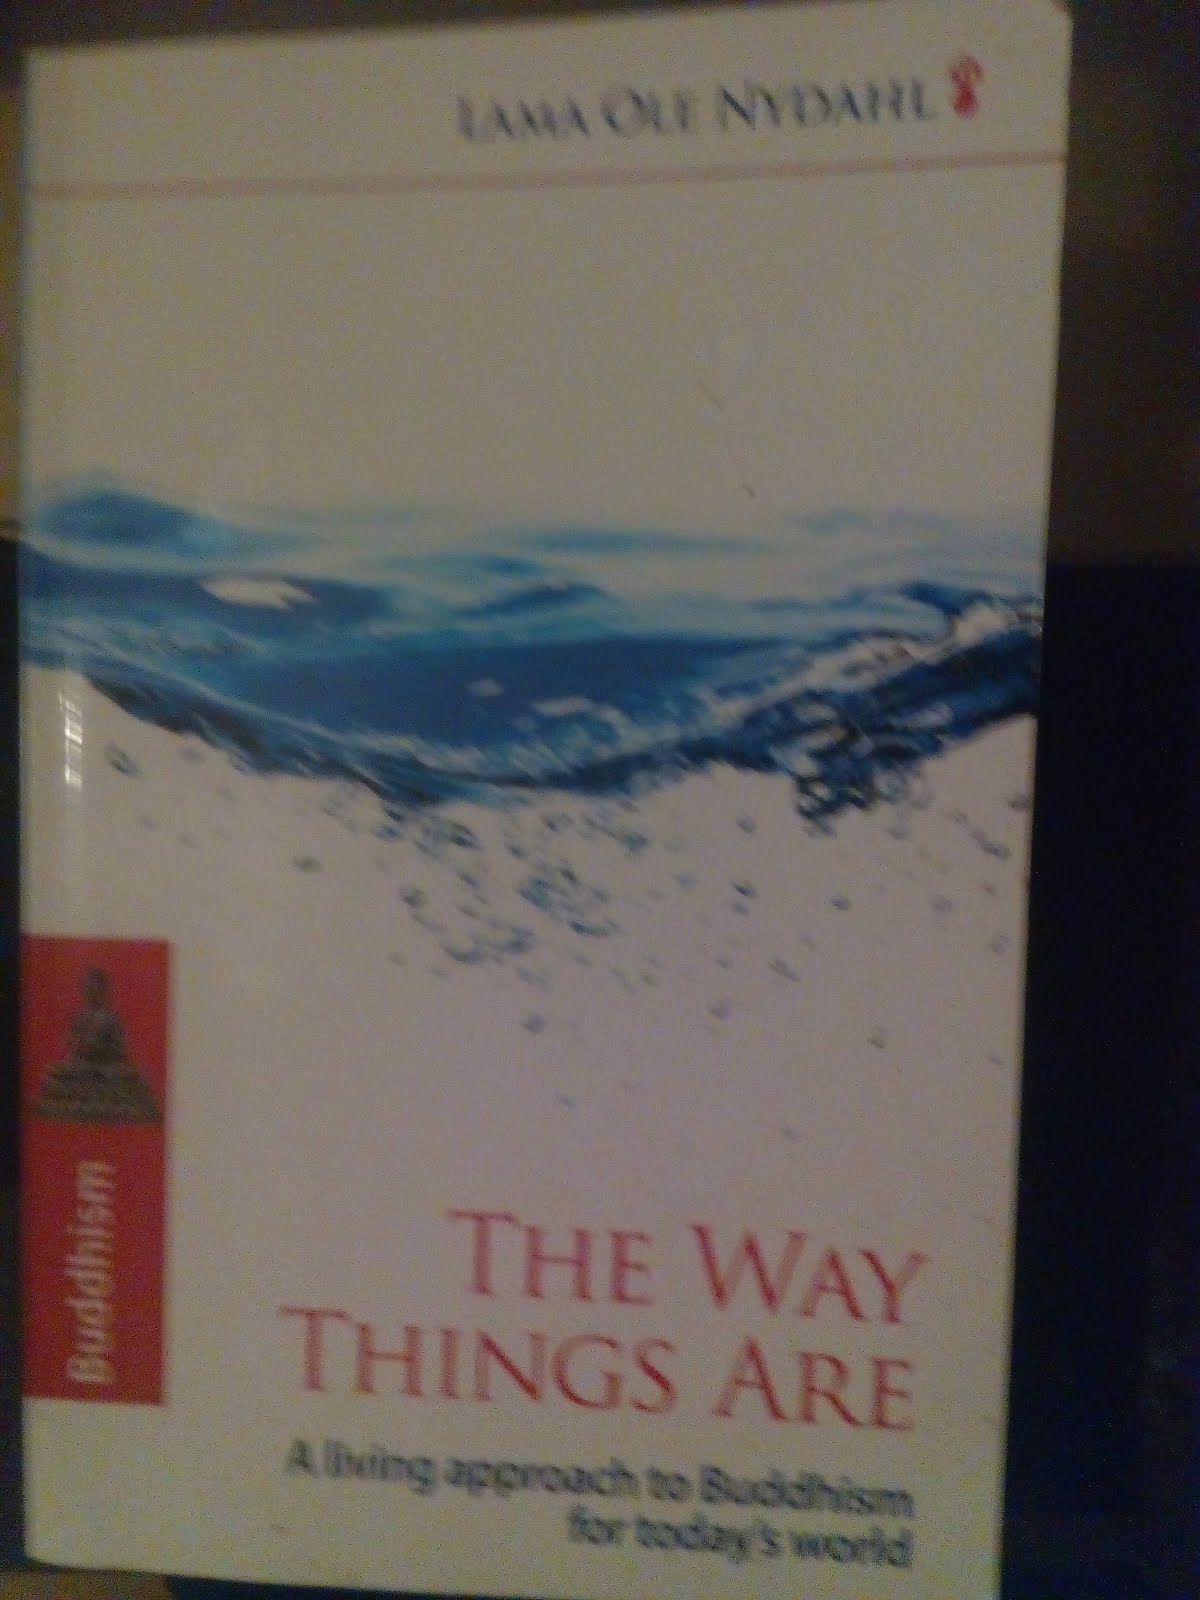 'The Way Things Are' by Lama Ole Nydahl.